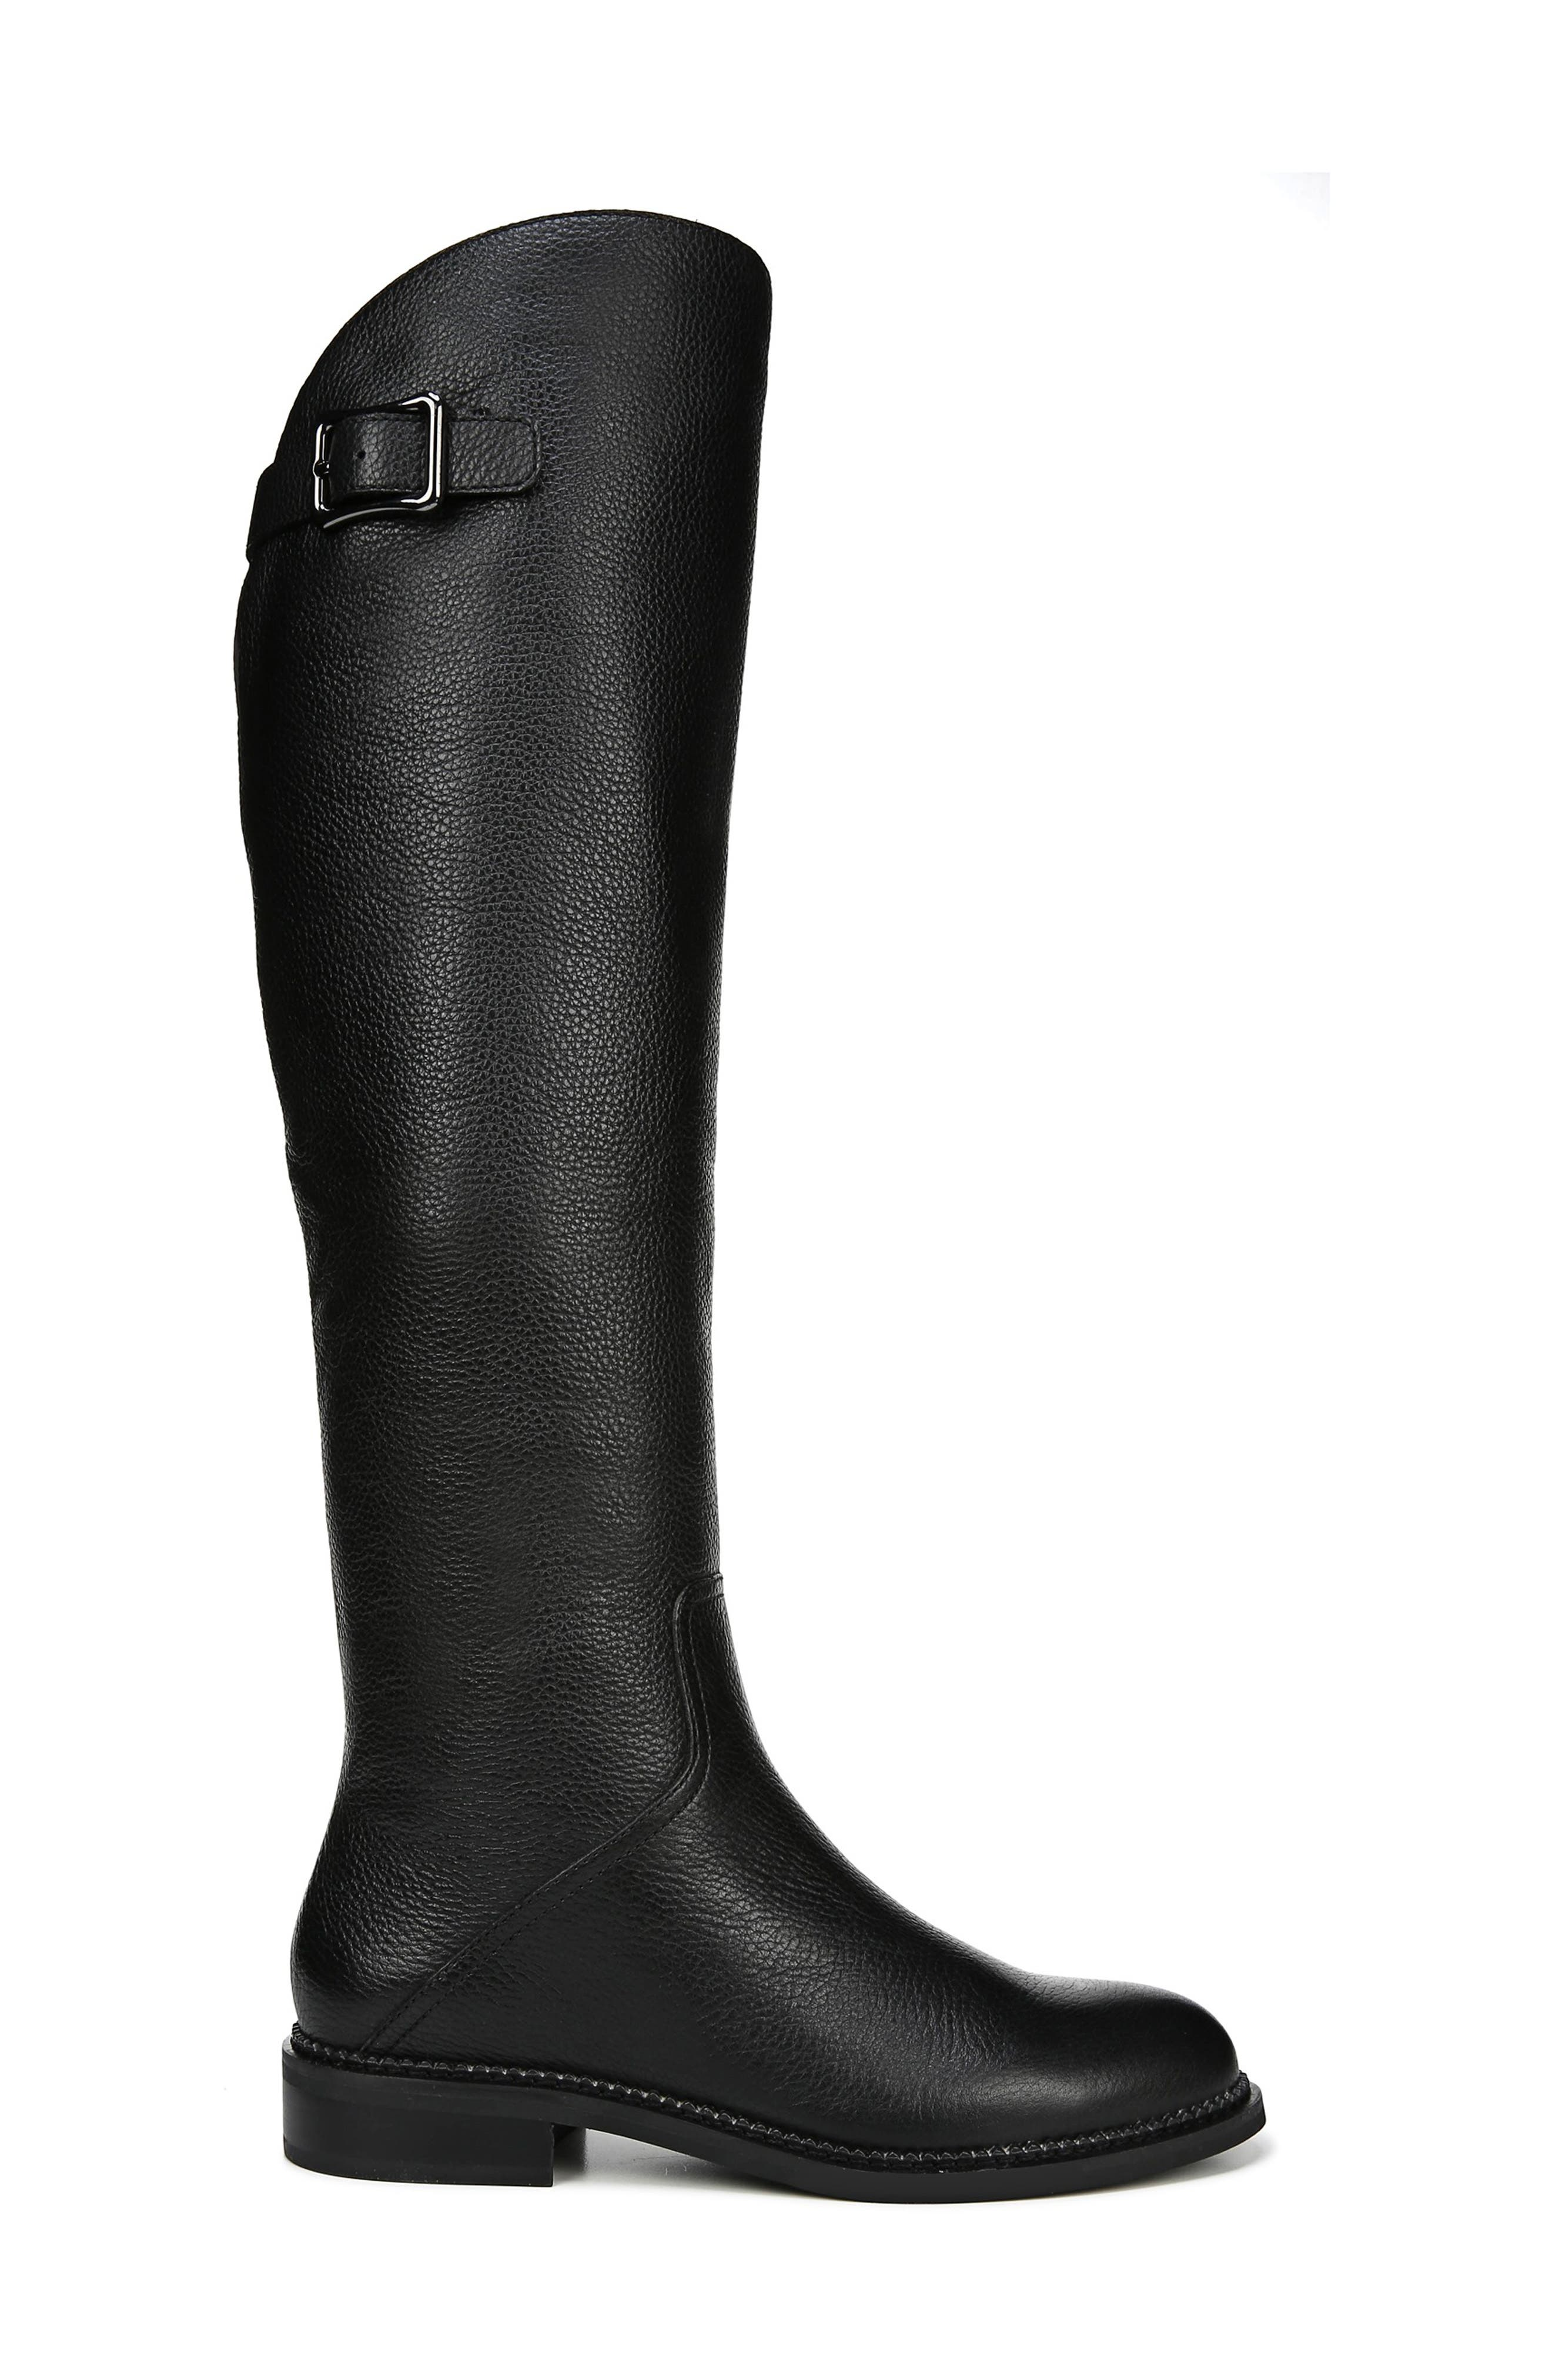 Halloway Knee High Boot,                             Alternate thumbnail 3, color,                             BLACK LEATHER